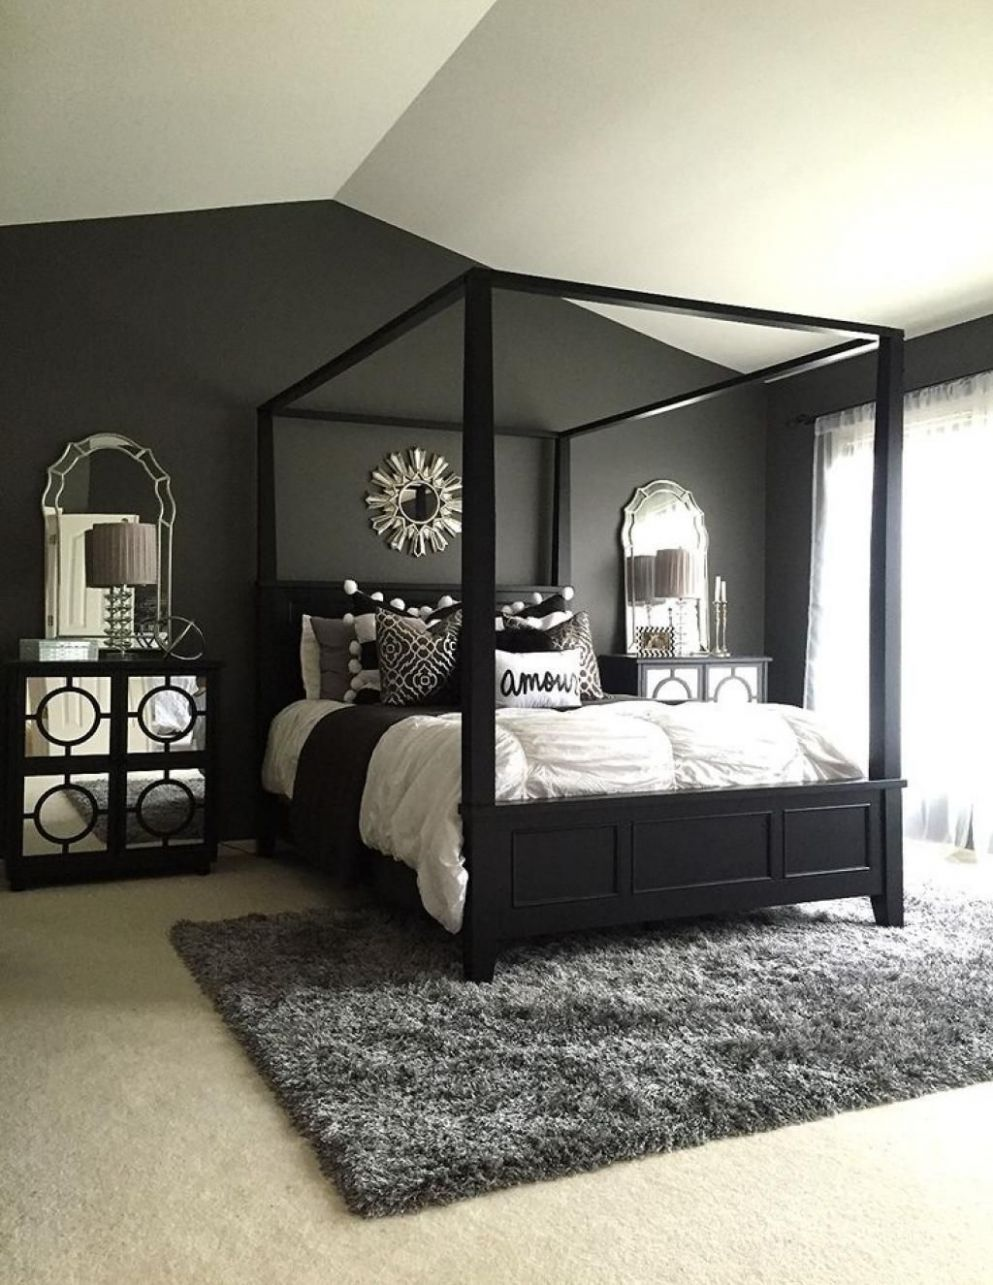 11 Elegant Black Bedroom Decorating Ideas | Black master bedroom ..